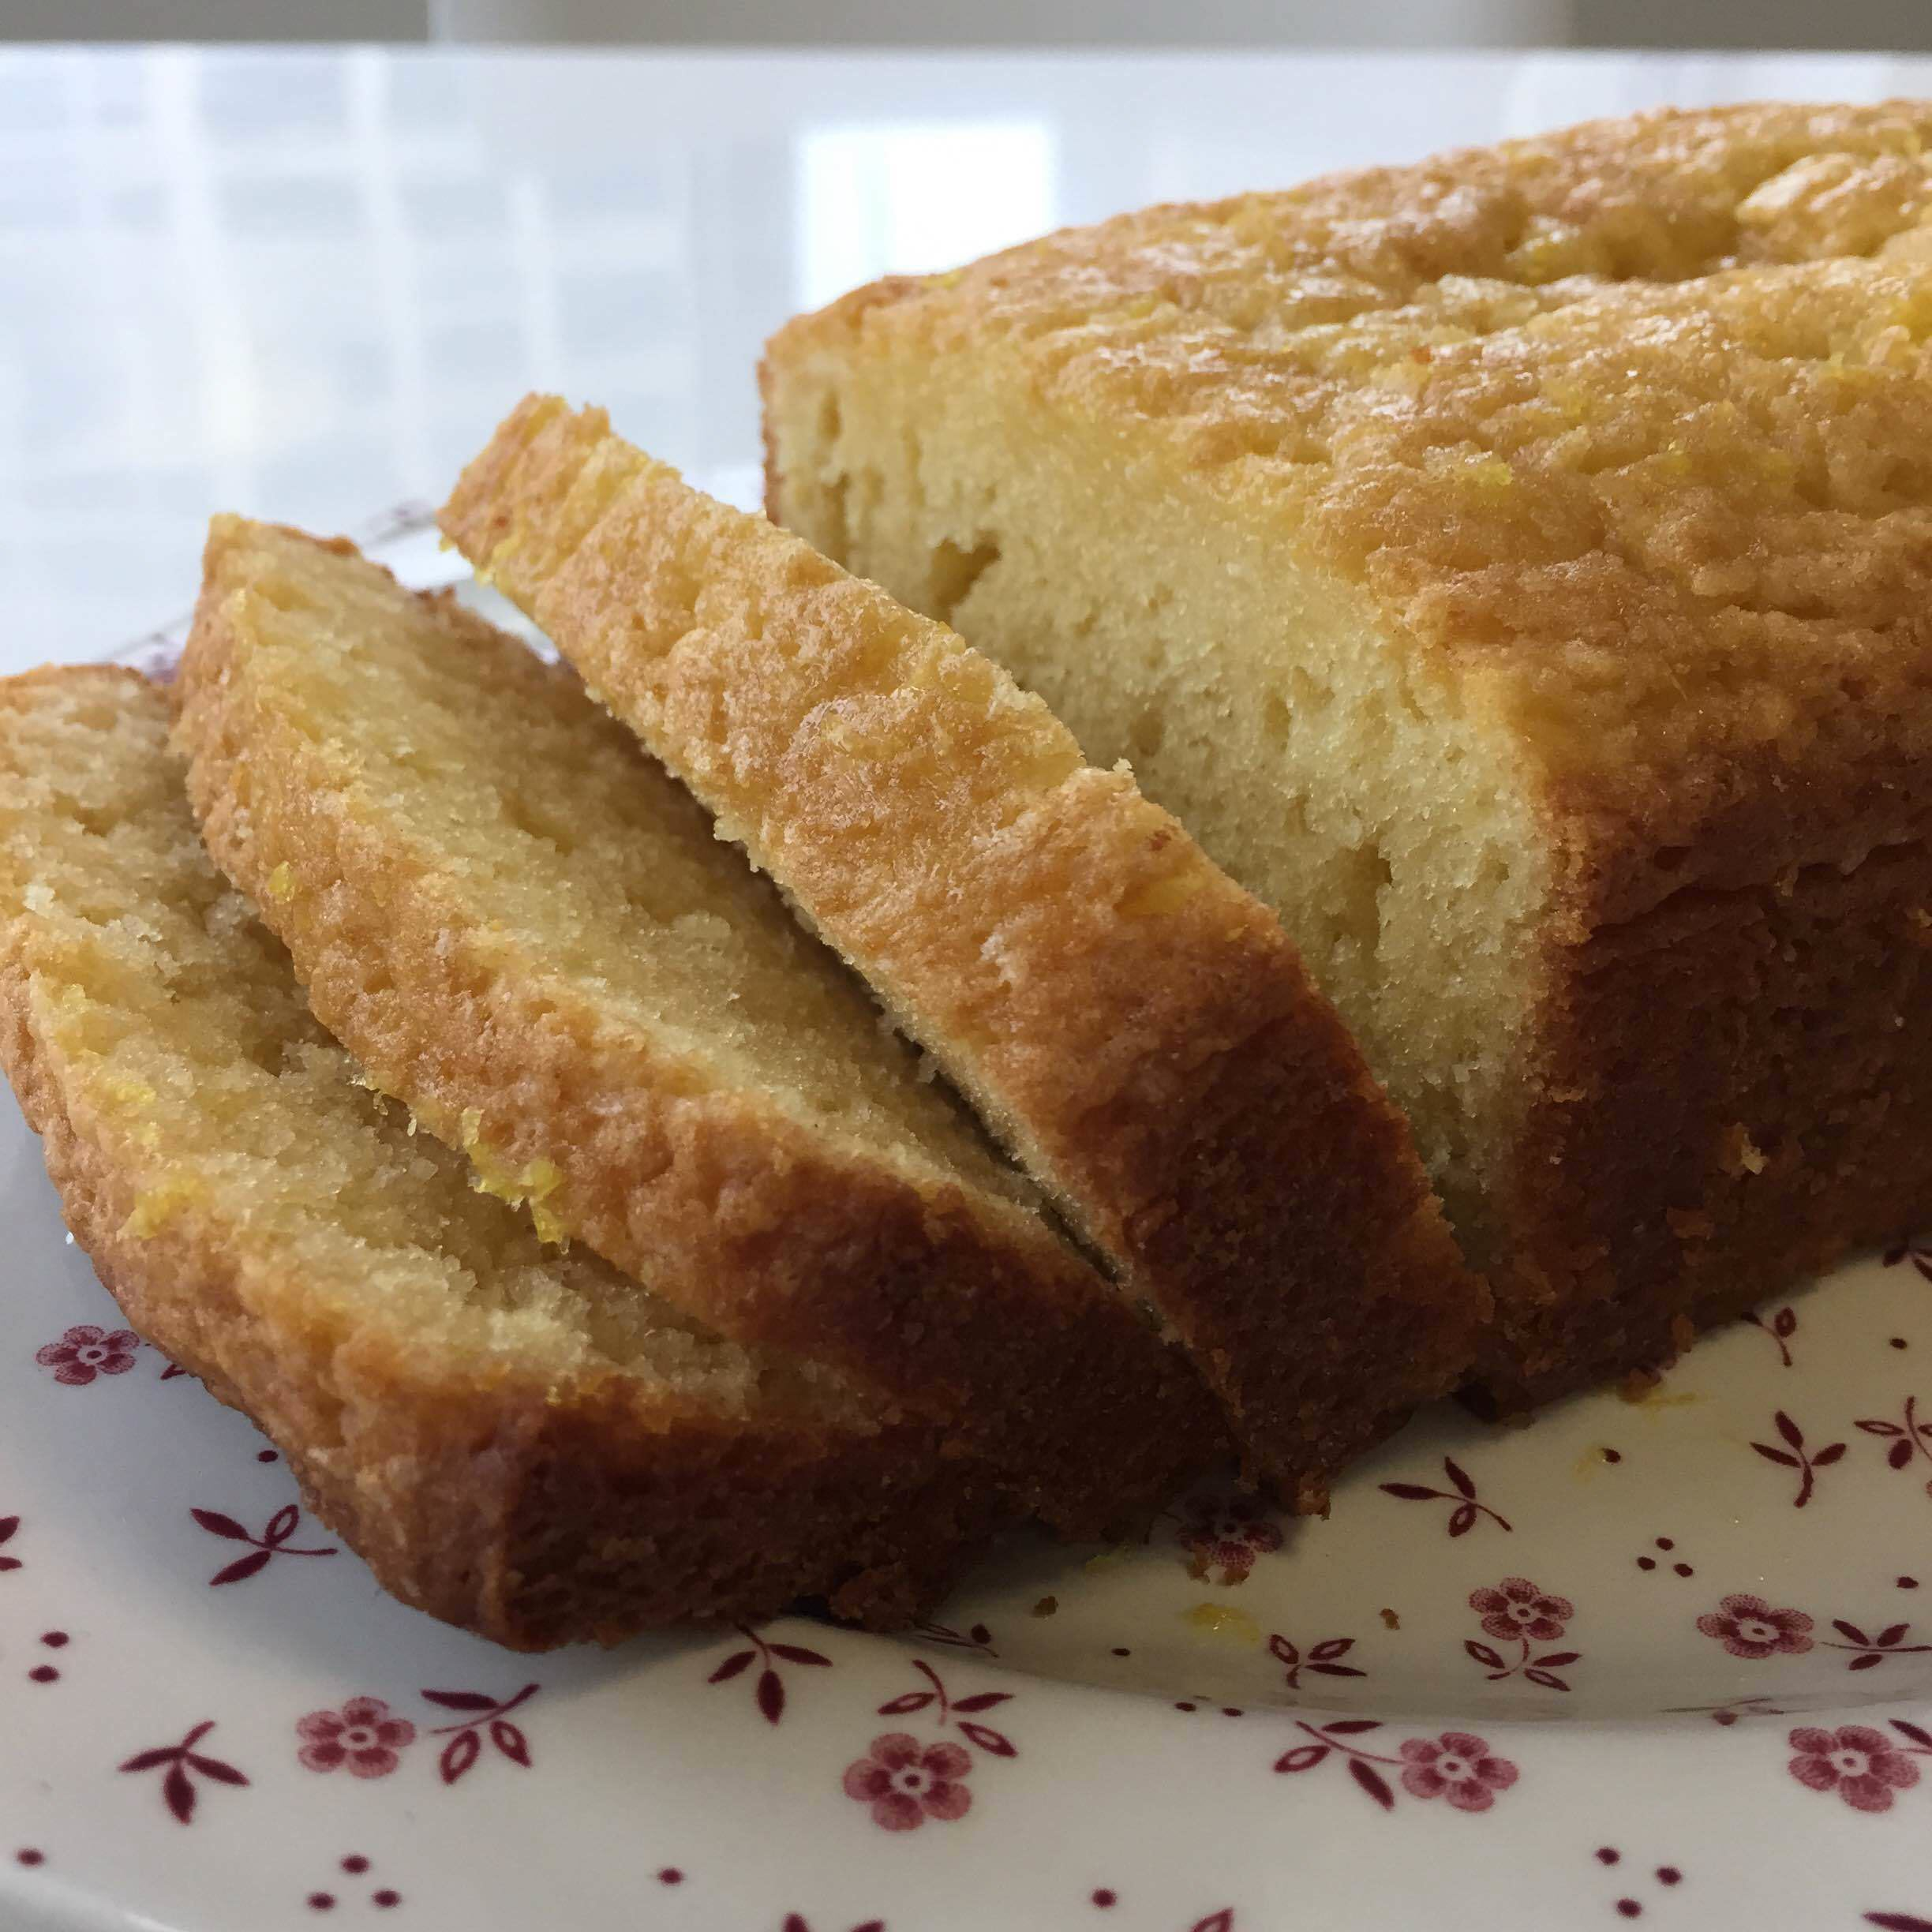 This easy to make loaf cake gets an extra boost of lemon flavor with the addition of lemon curd. It's perfect for picnics or as an afternoon treat! This recipe will make 16 to 18 cupcakes if you prefer. Reduce baking time for cupcakes to about 45 minutes.